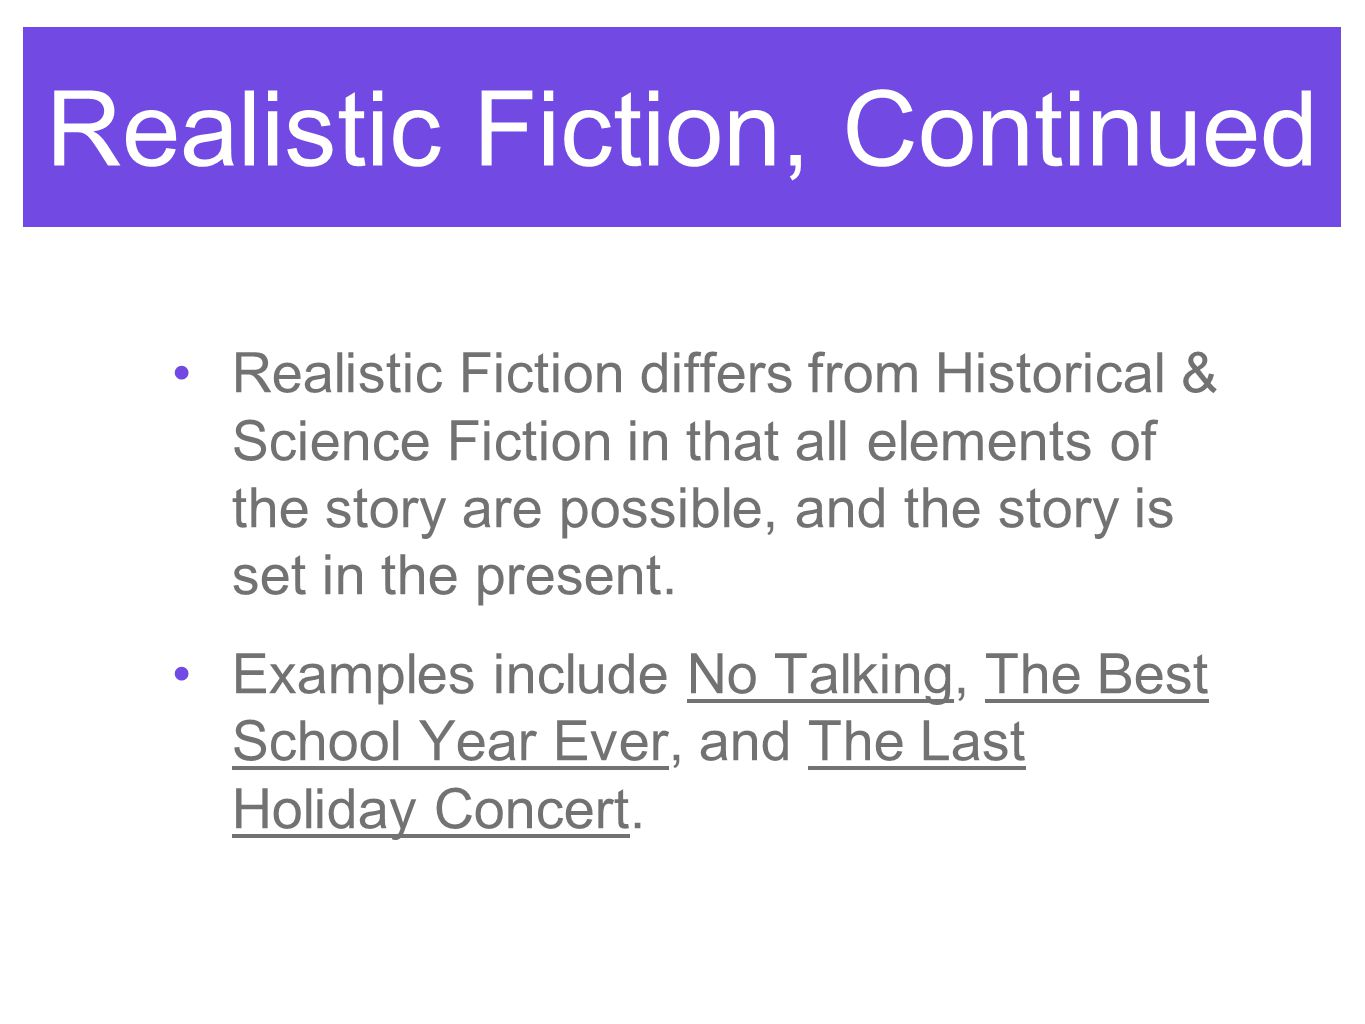 Realistic Fiction, Continued